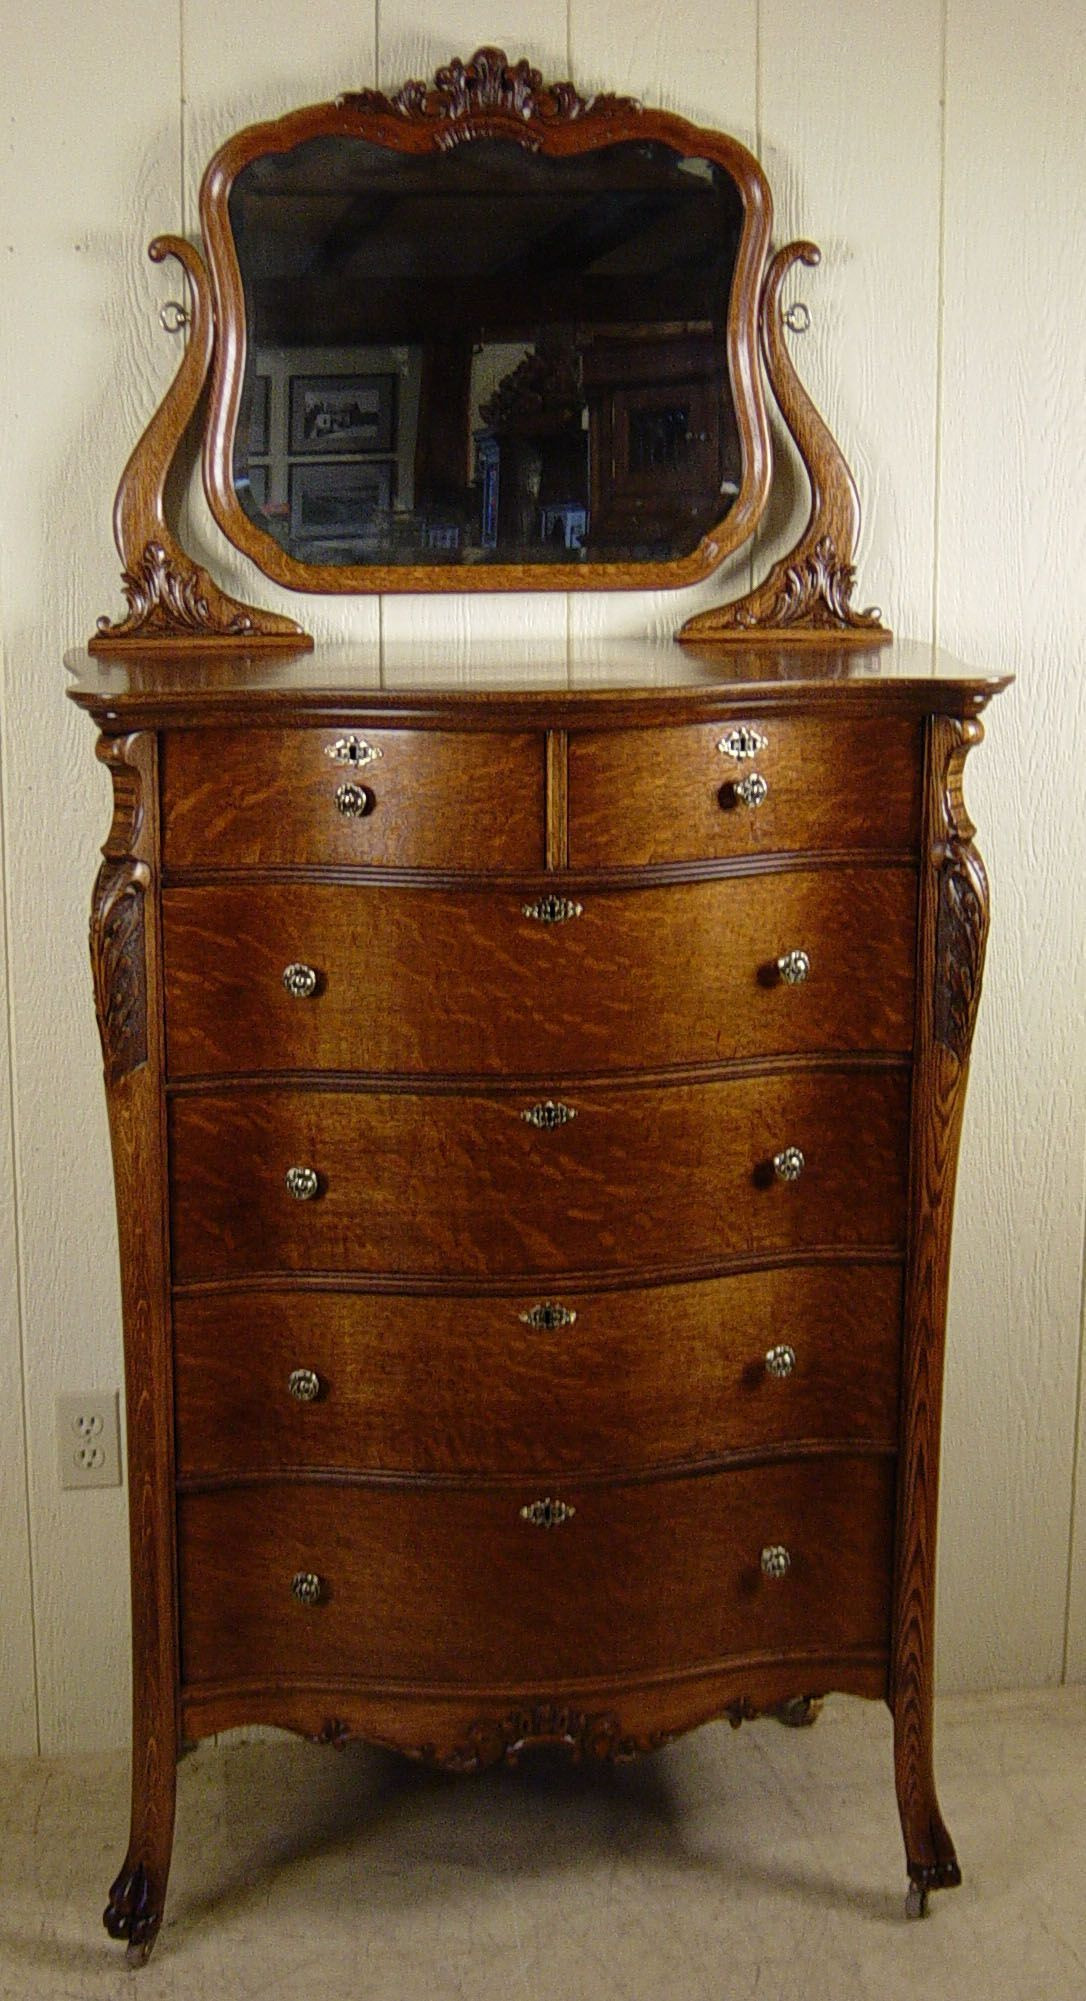 Cheap Antique Furniture for Sale Online Lovely Danish Furniture Antic Furniture Line